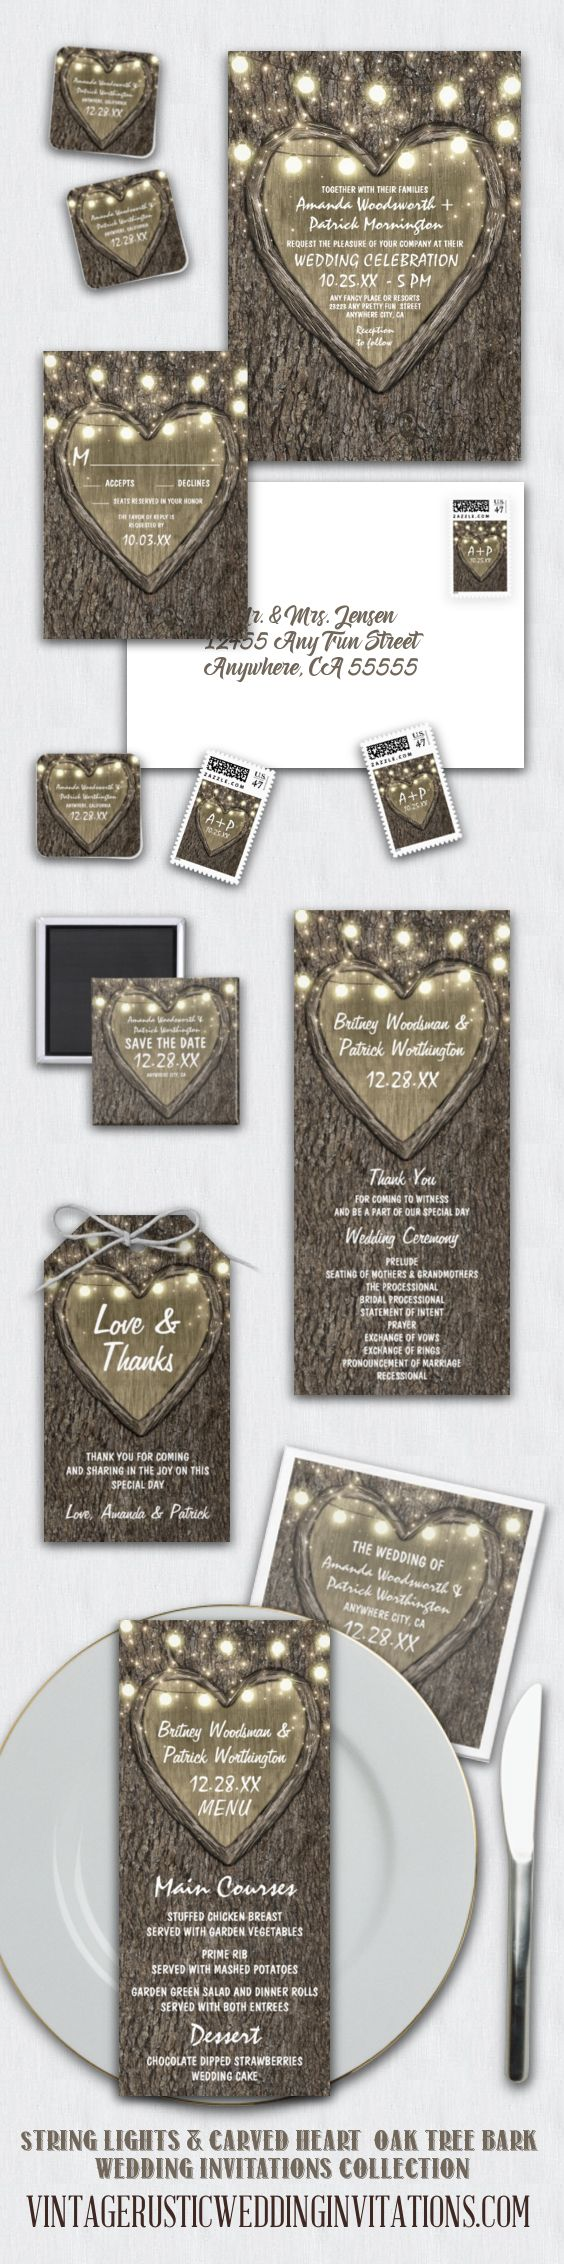 Rustic carved heart oak tree wedding invitations with matching RSVP cards, save the dates, menus, thank you tags, napkins, stamps, favors and more.